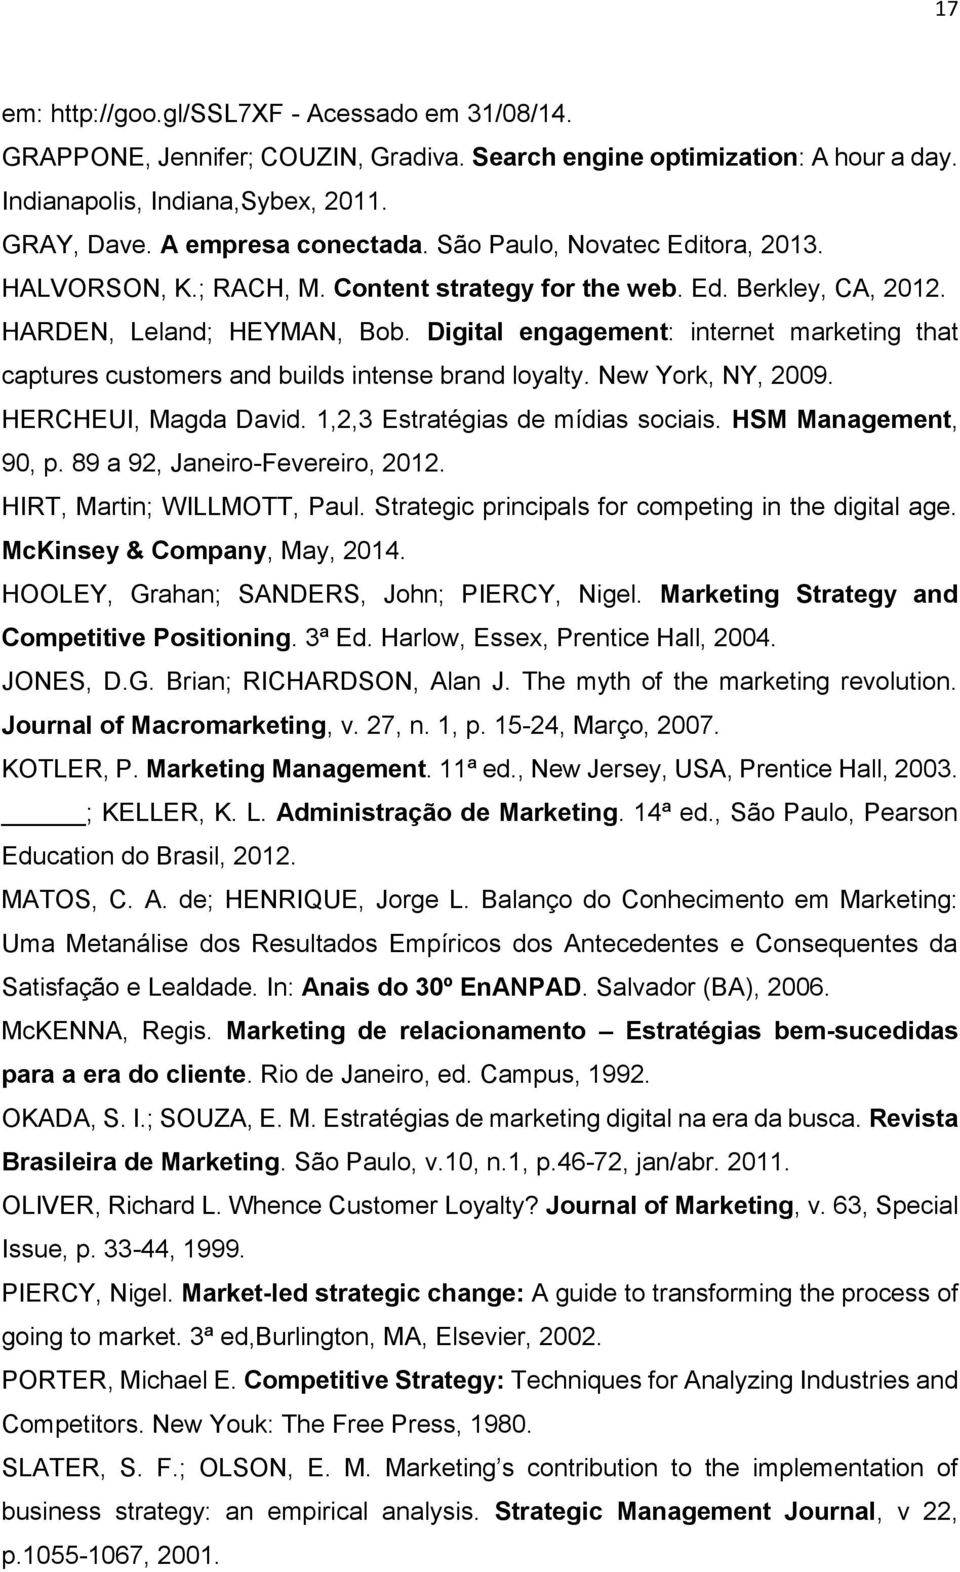 Digital engagement: internet marketing that captures customers and builds intense brand loyalty. New York, NY, 2009. HERCHEUI, Magda David. 1,2,3 Estratégias de mídias sociais. HSM Management, 90, p.